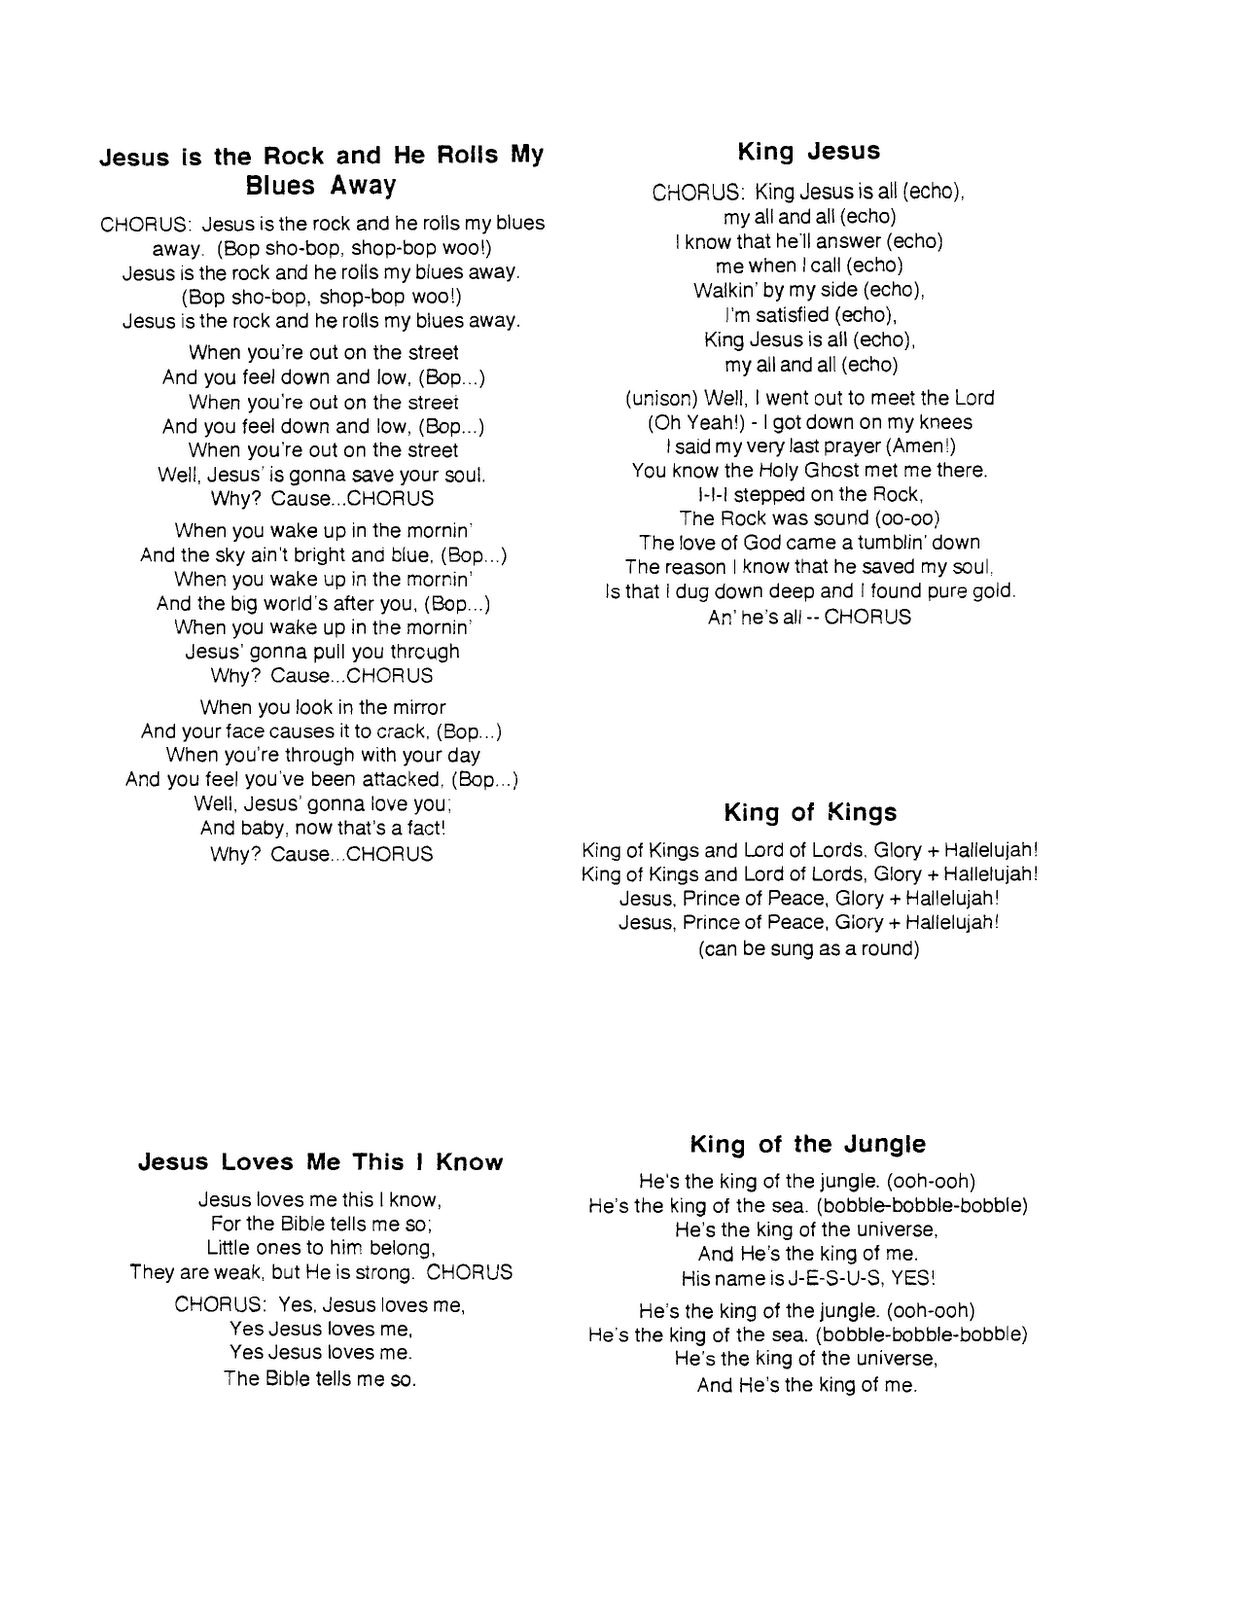 Lyrics to campfire songs